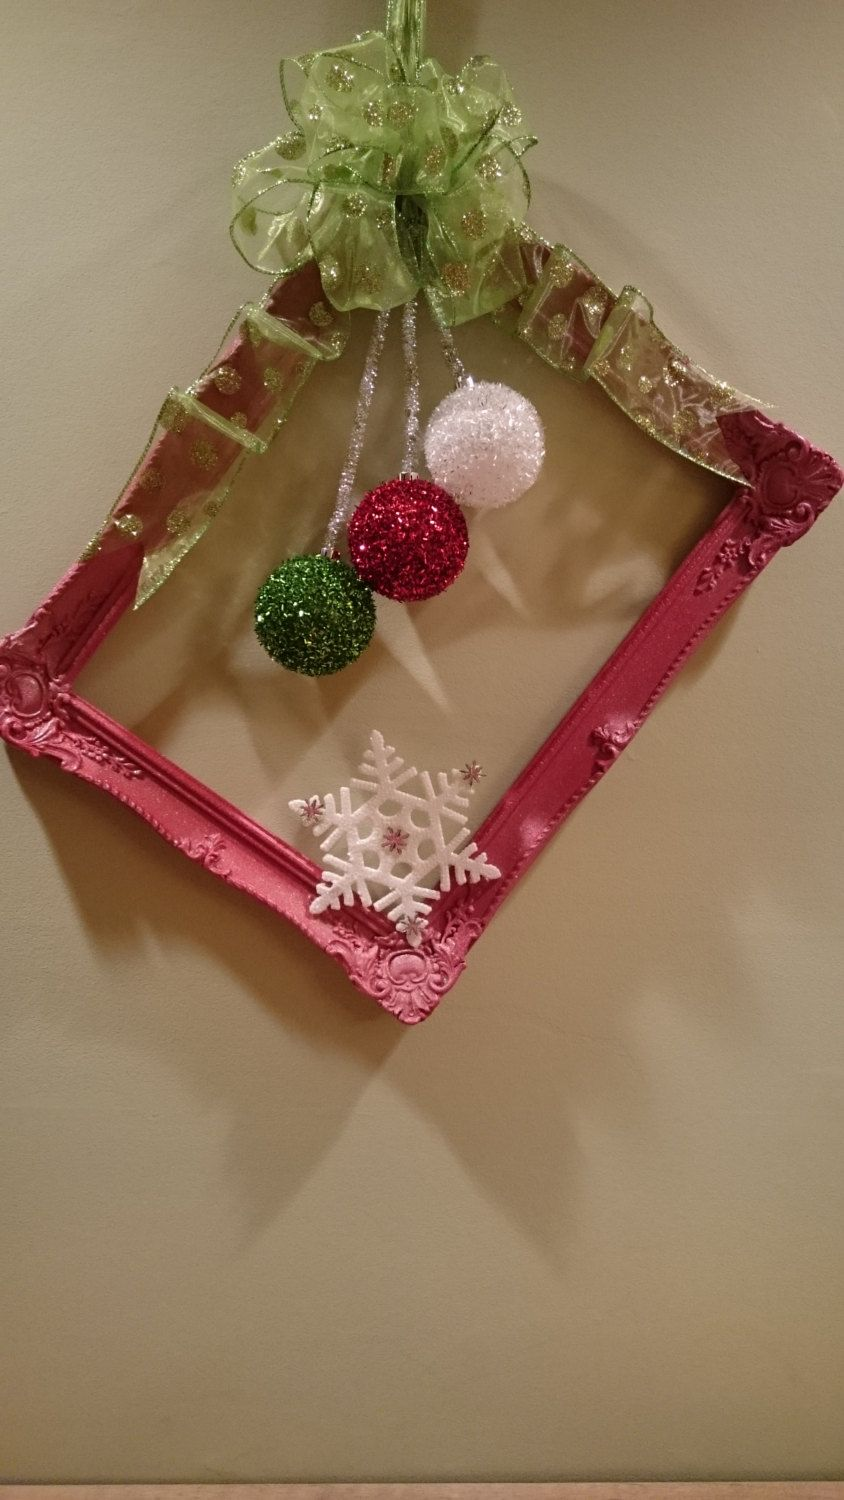 Christmas picture frame wreath, door wreath, Christmas wreath, red wreath, holiday wreath, by KaterinaKatka on Etsy